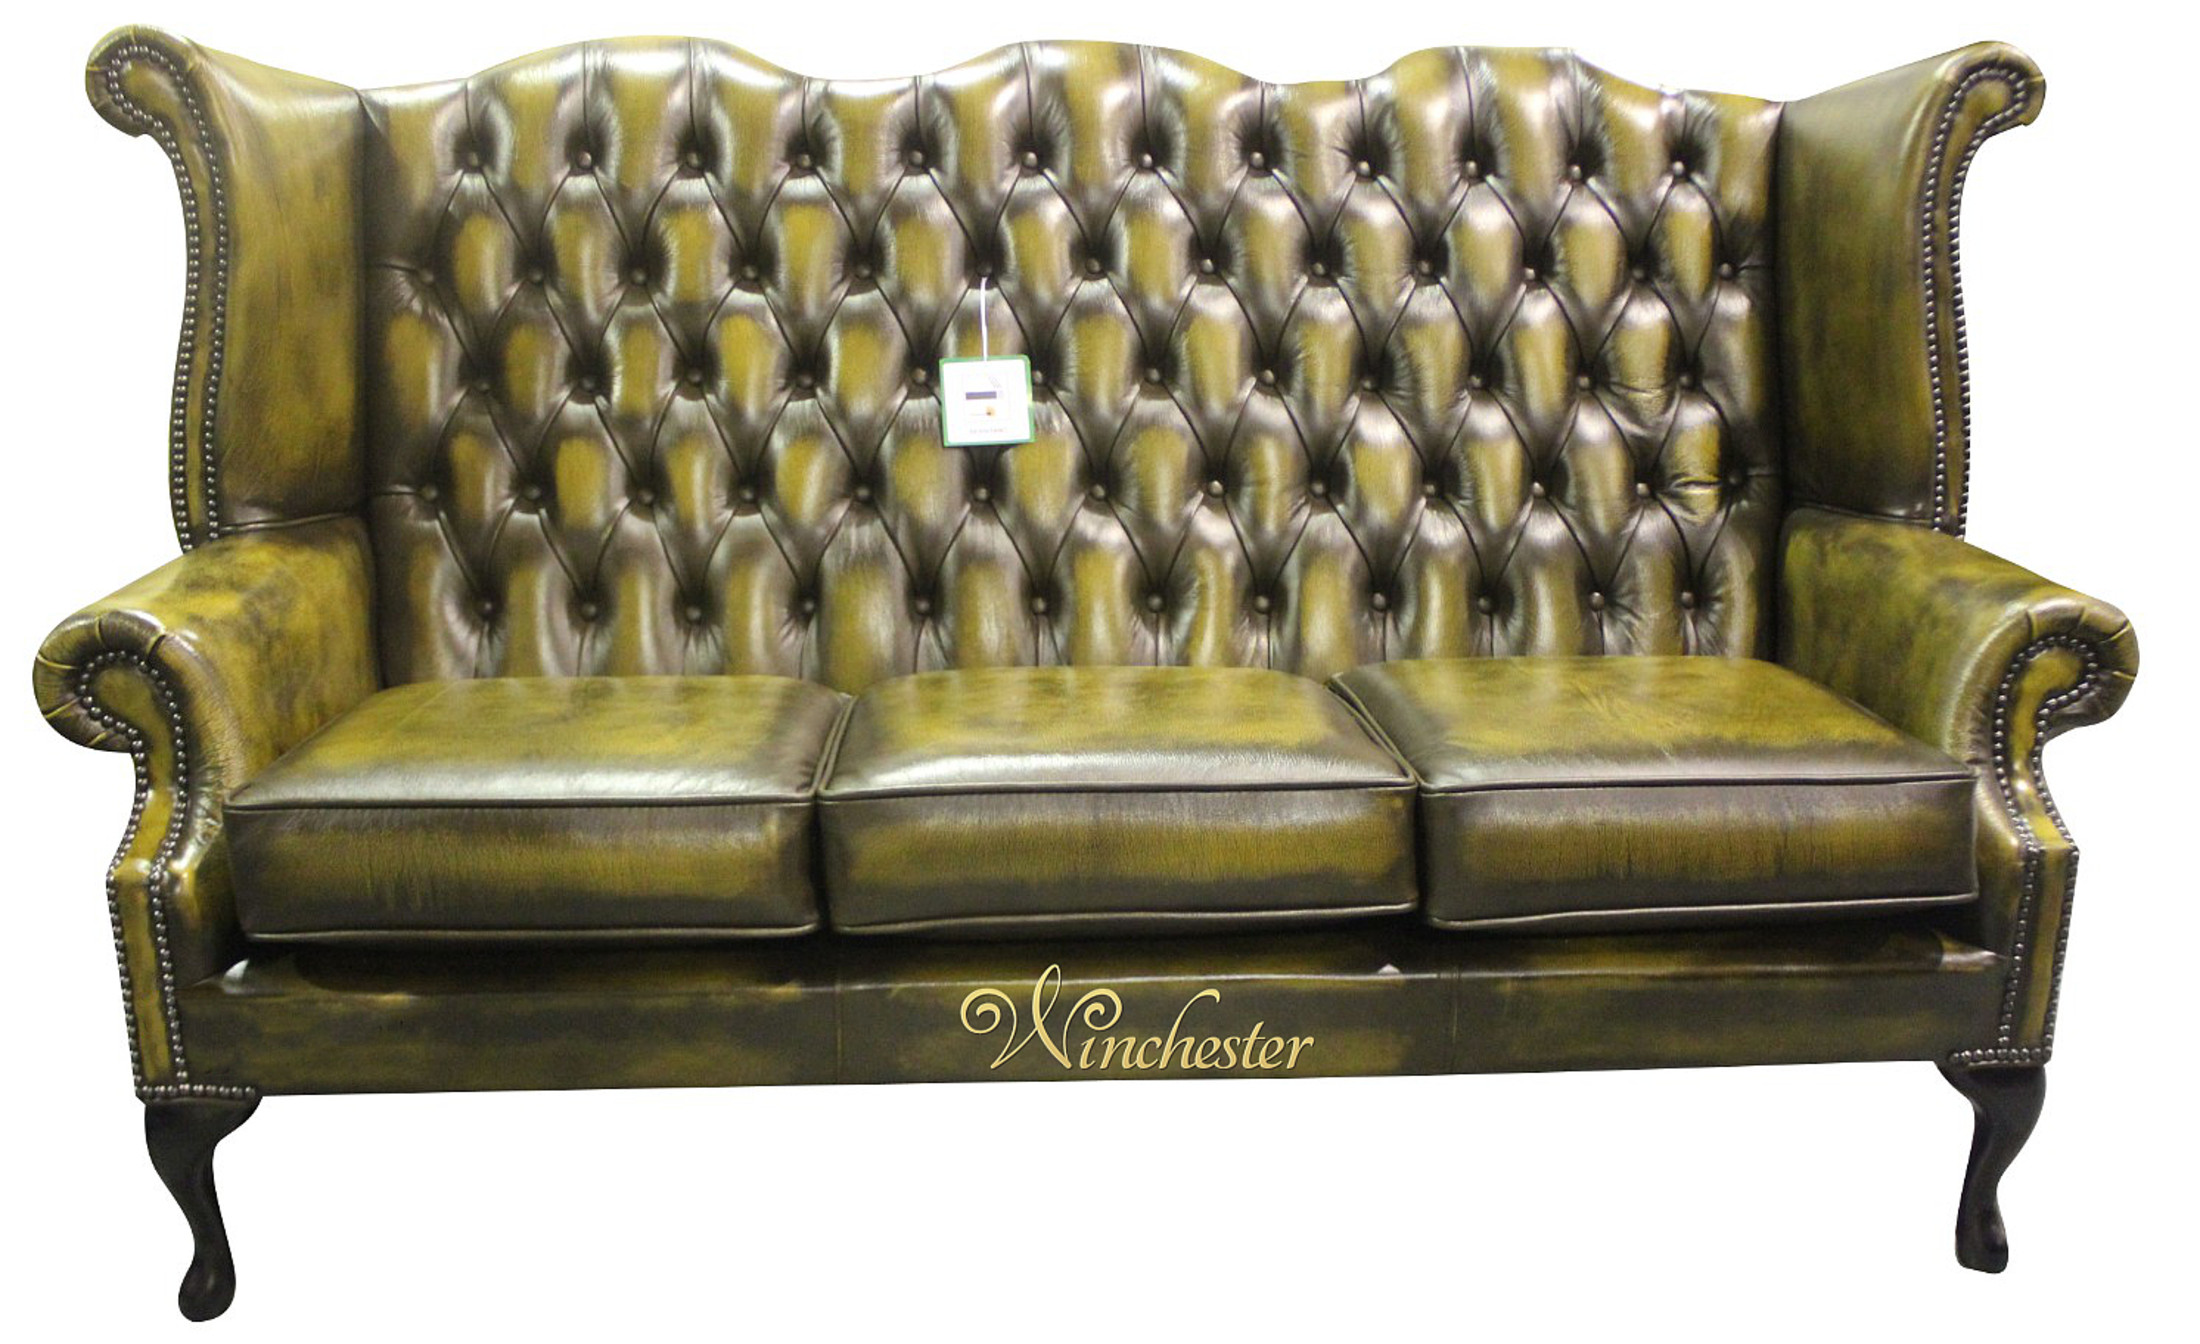 Chesterfield Queen Anne High Back Sofa Antique Gold Leather Wc